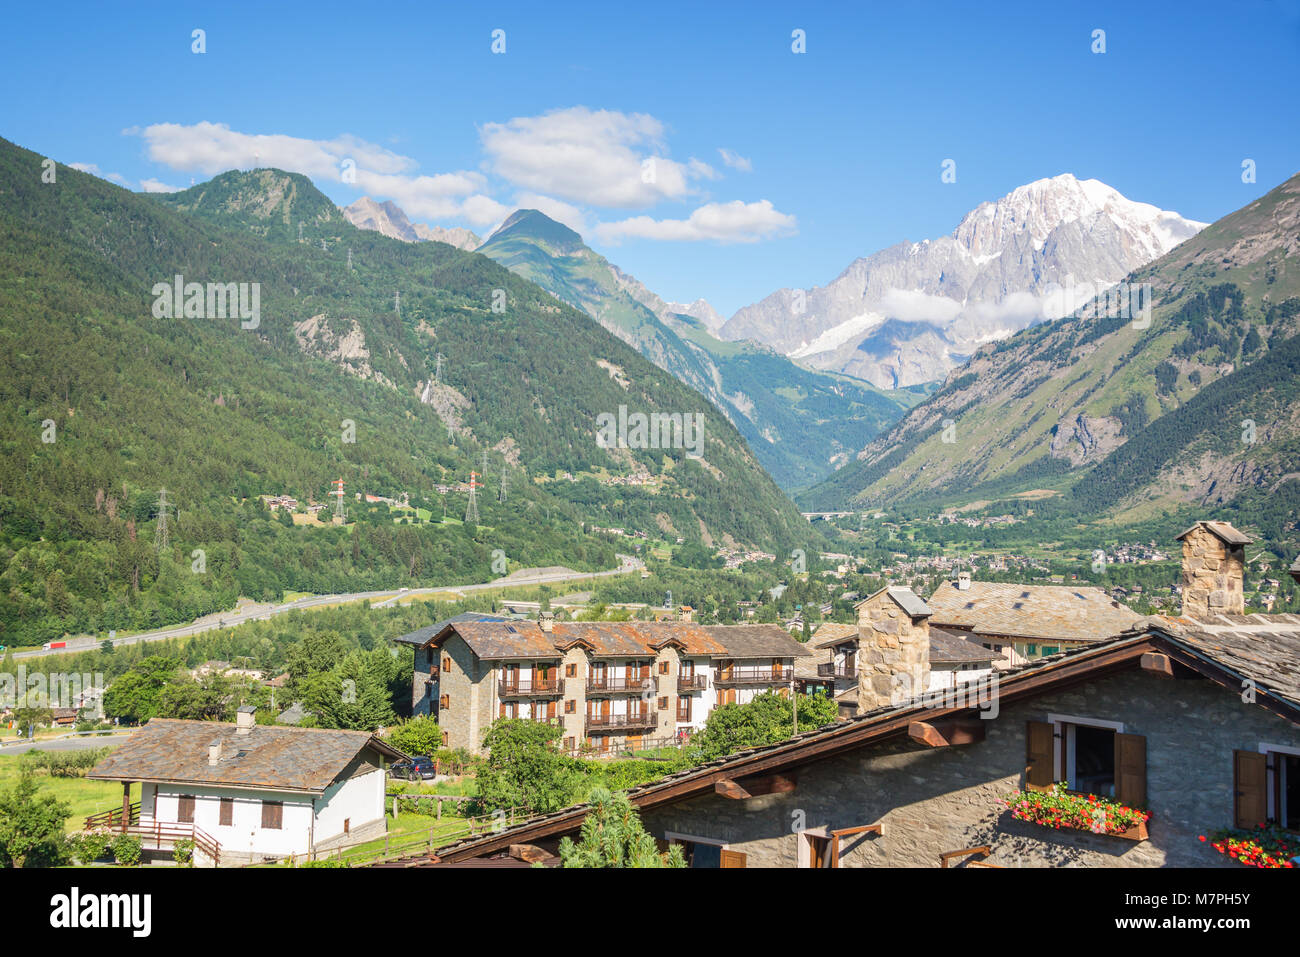 Scenic view of the Aosta Valley, Monte Bianco (Mont Blanc) in the background, Italy - Stock Image